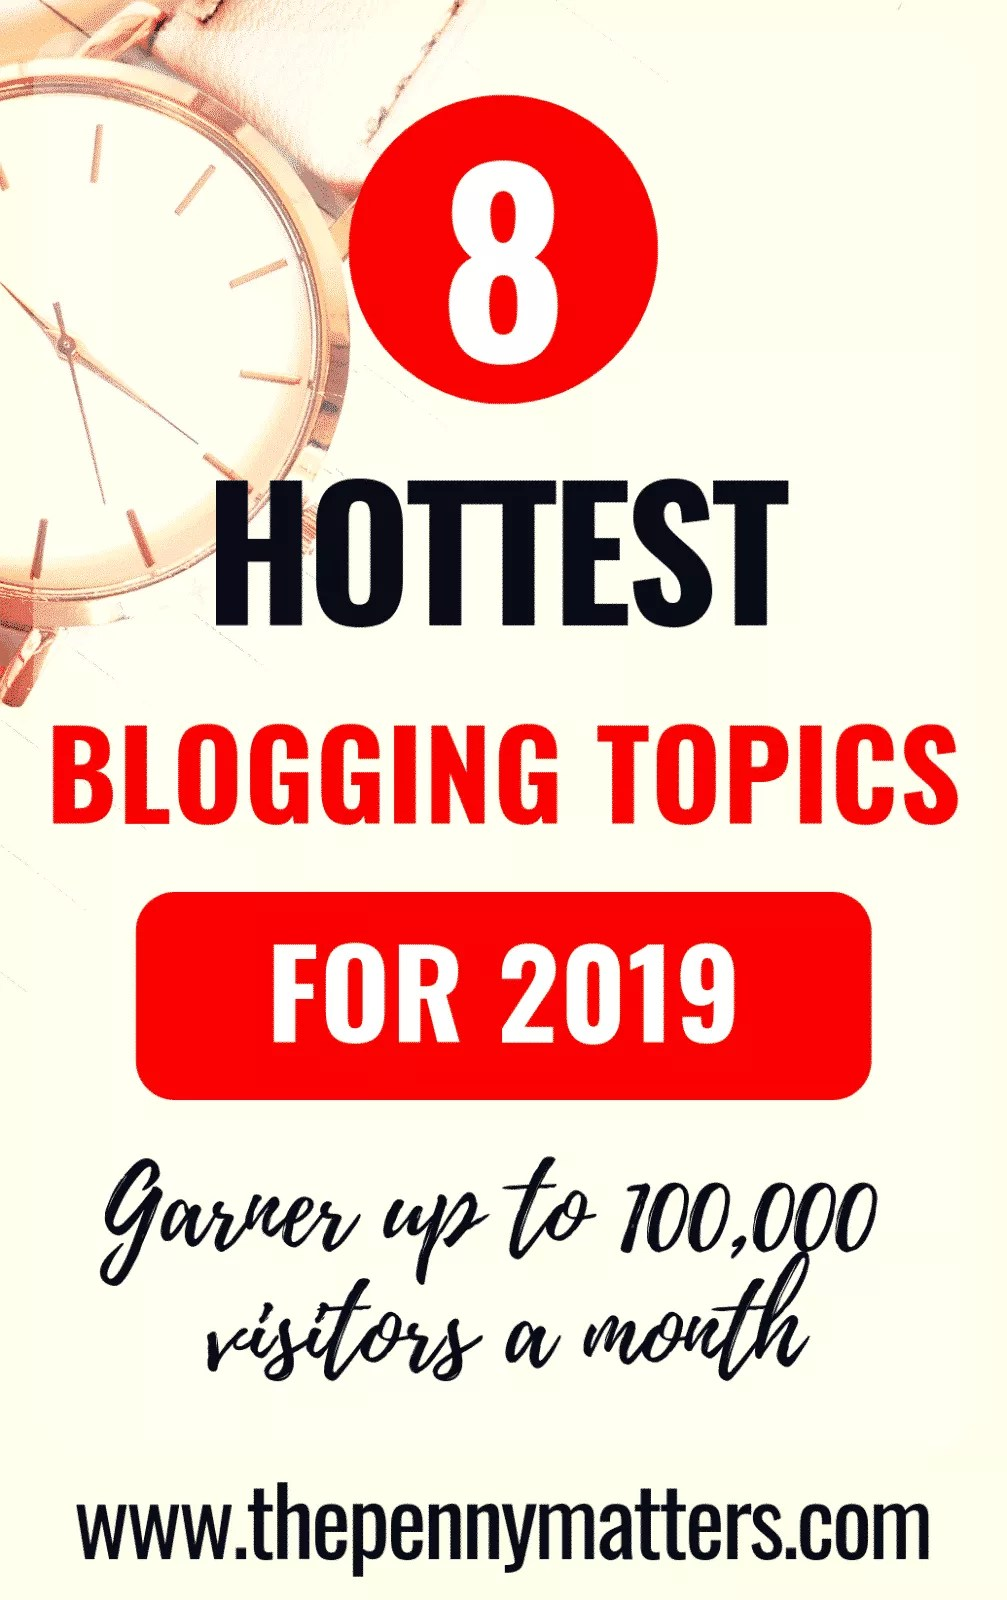 8 of the hottest blogging topics to blog about